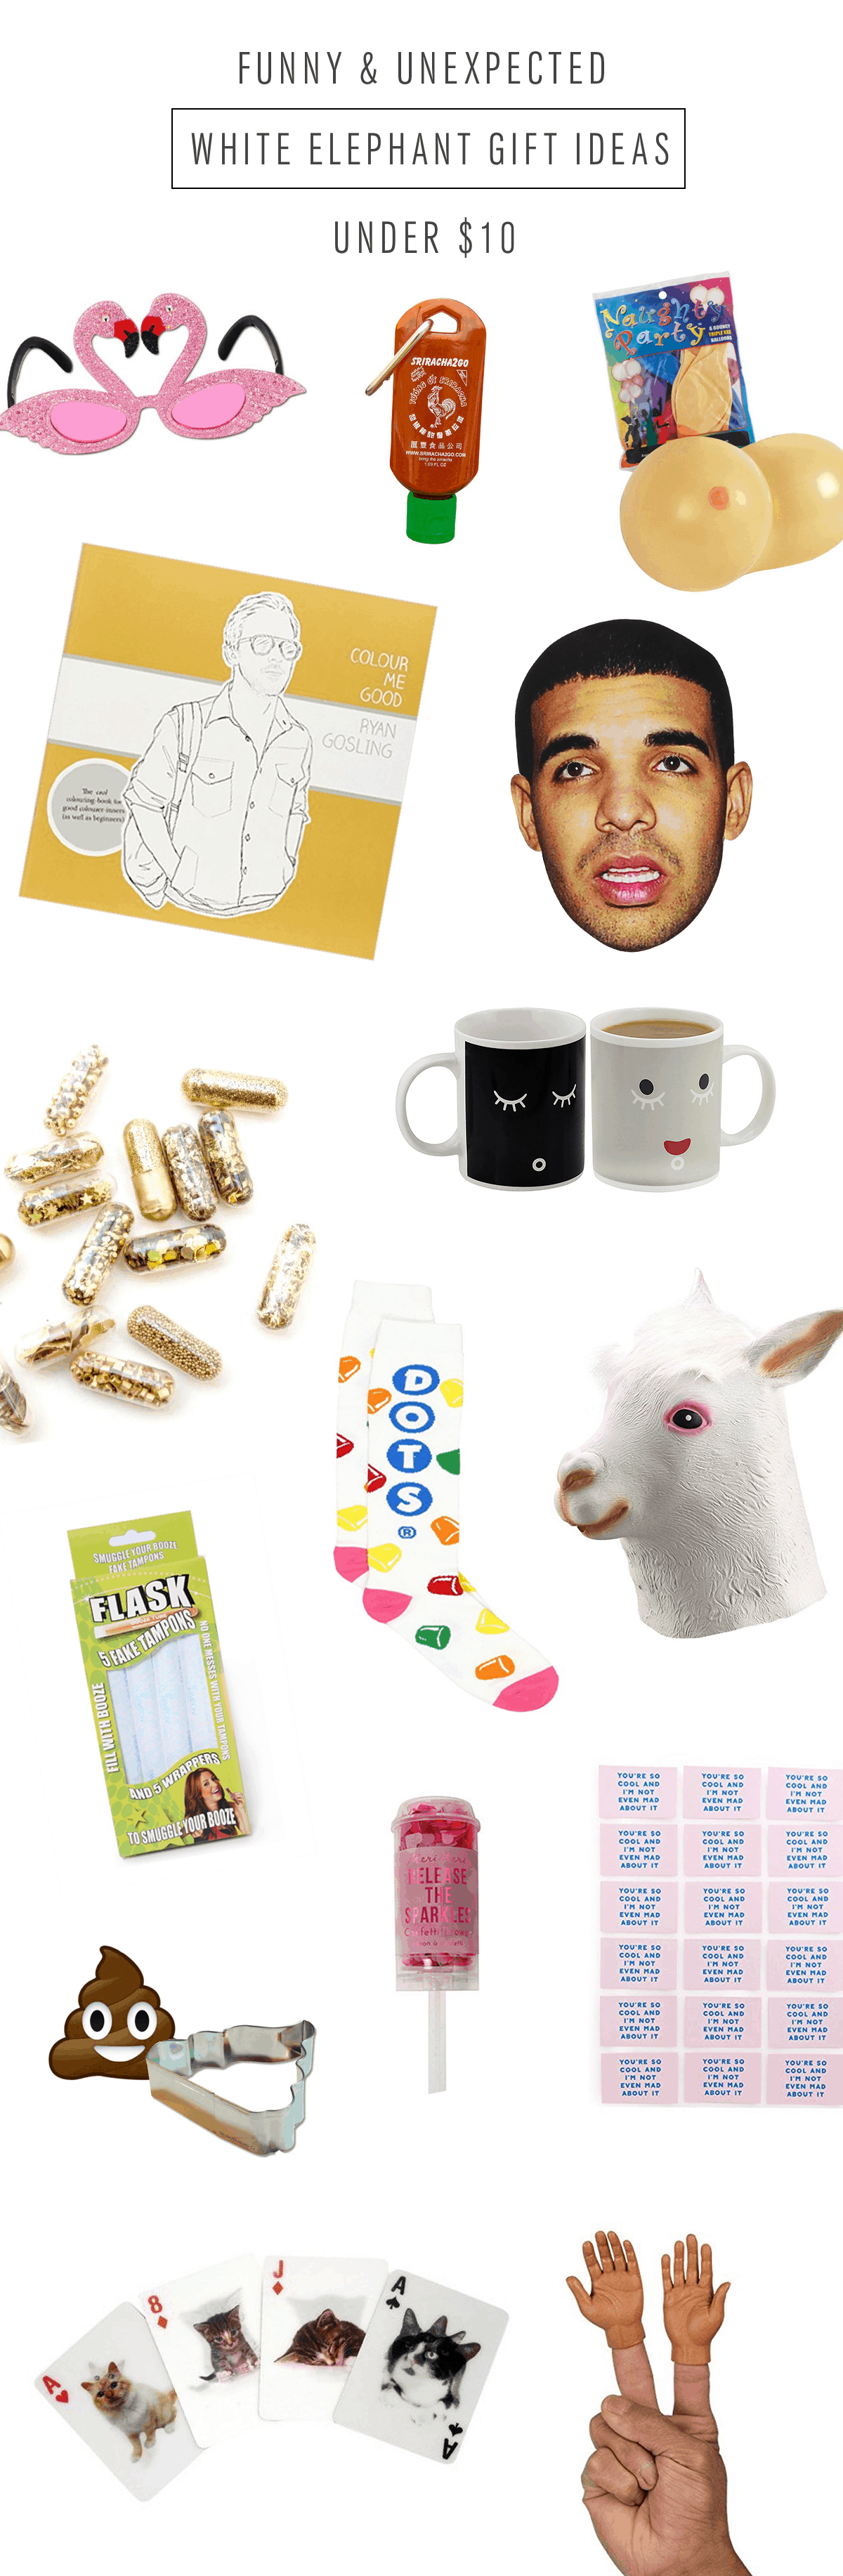 Funny and Unexpected white elephant gift ideas under $10 by Ashley Rose of the award winning DIY and lifestyle blog, Sugar & Cloth.